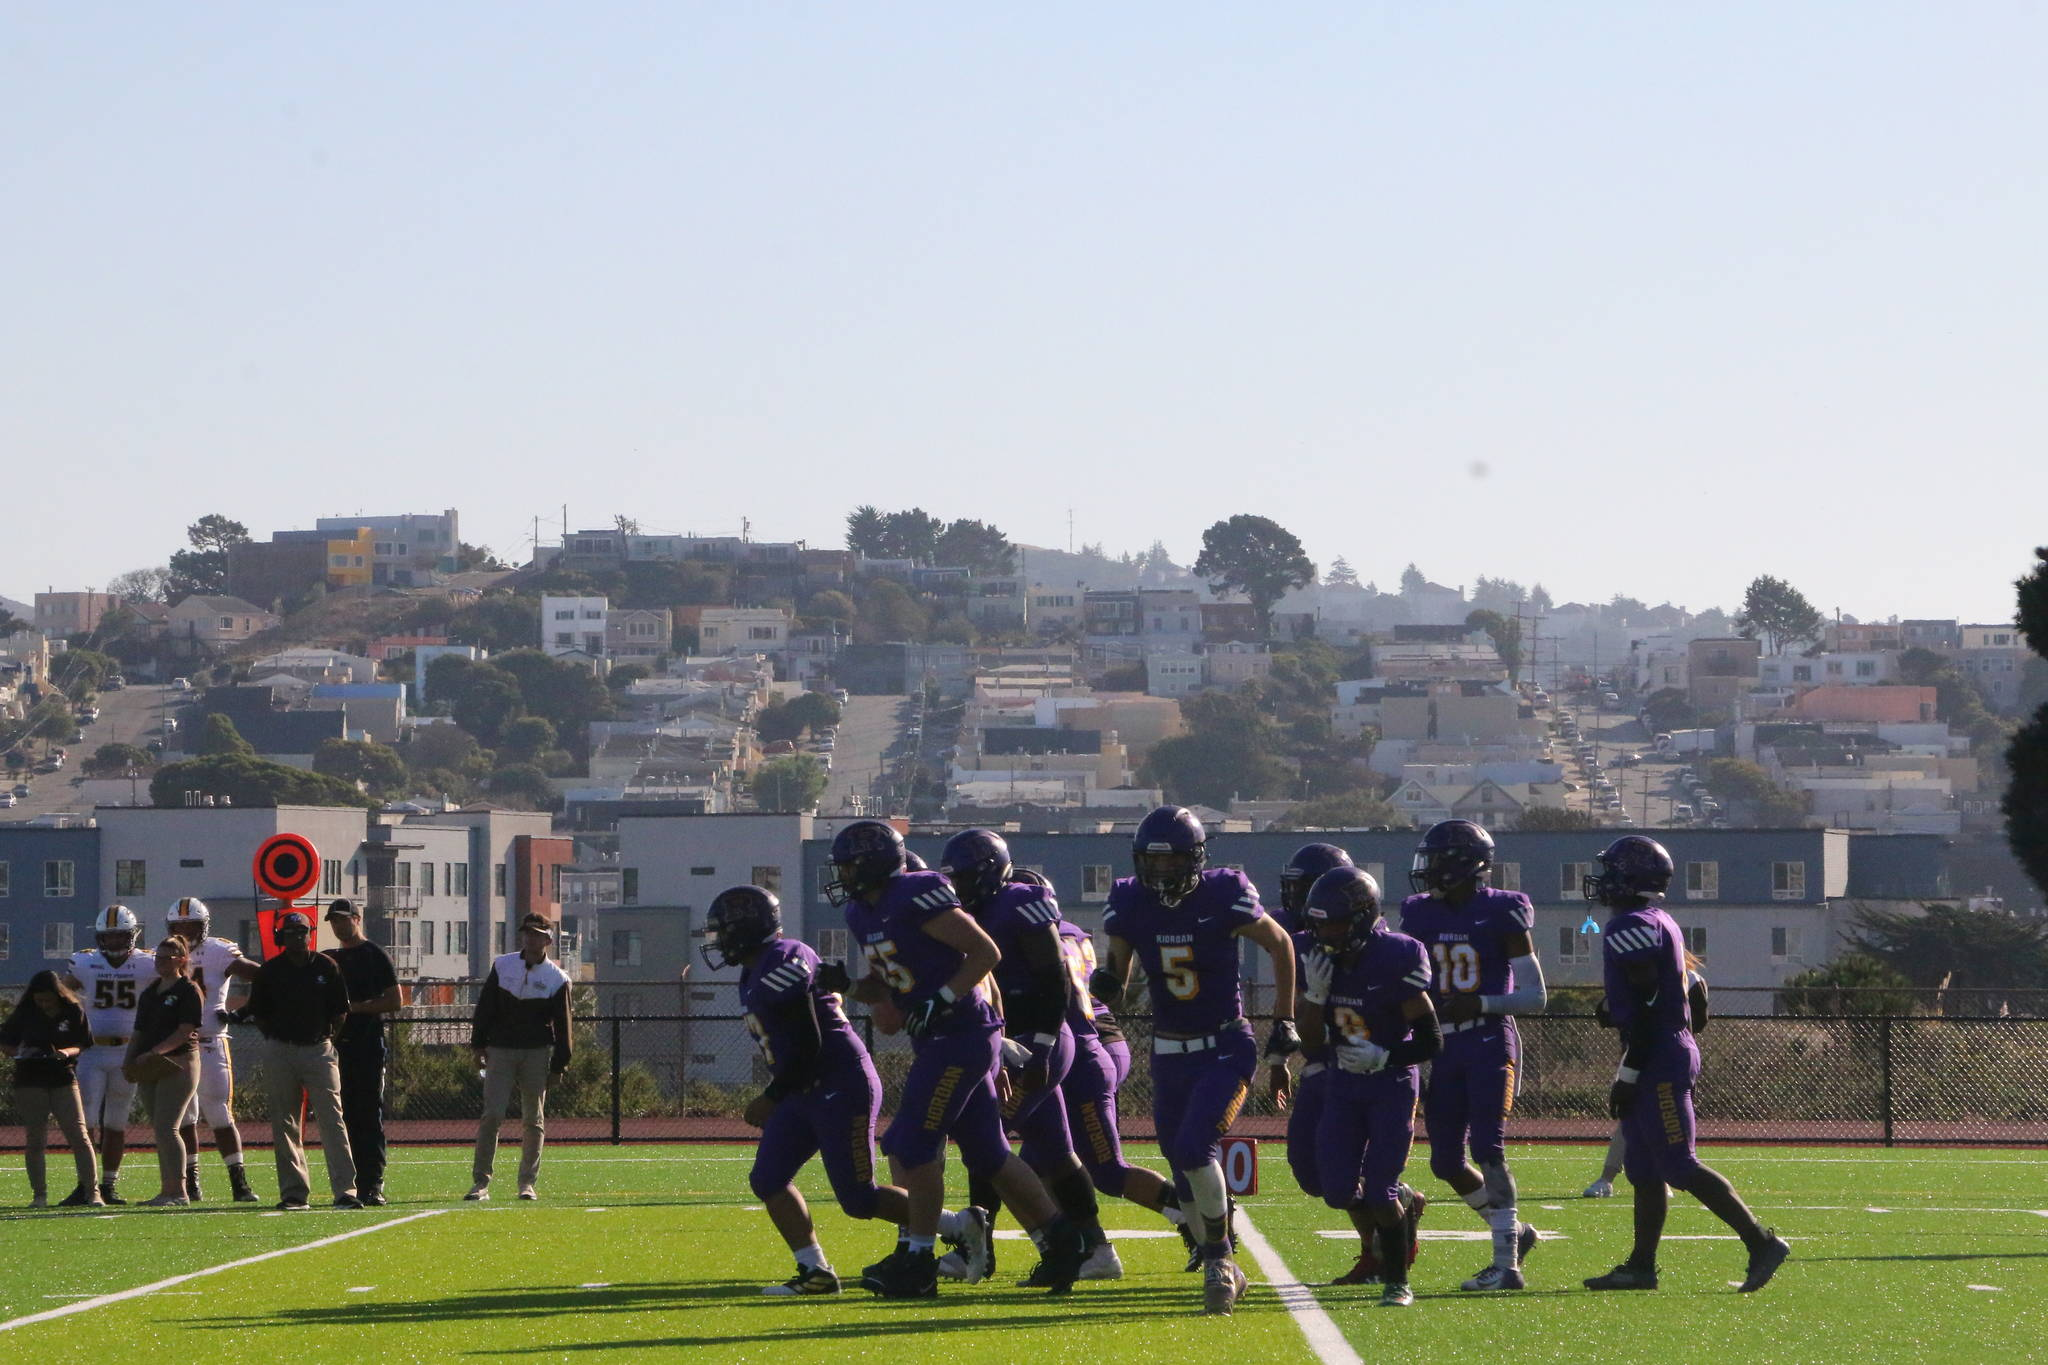 The view from newly-renovated Mayer Family Field on the Archbishop Riordan campus during the first game held there, a 24-7 loss to St. Francis on Nov. 2, 2019. (Ryan Gorcey / S.F. Examiner)